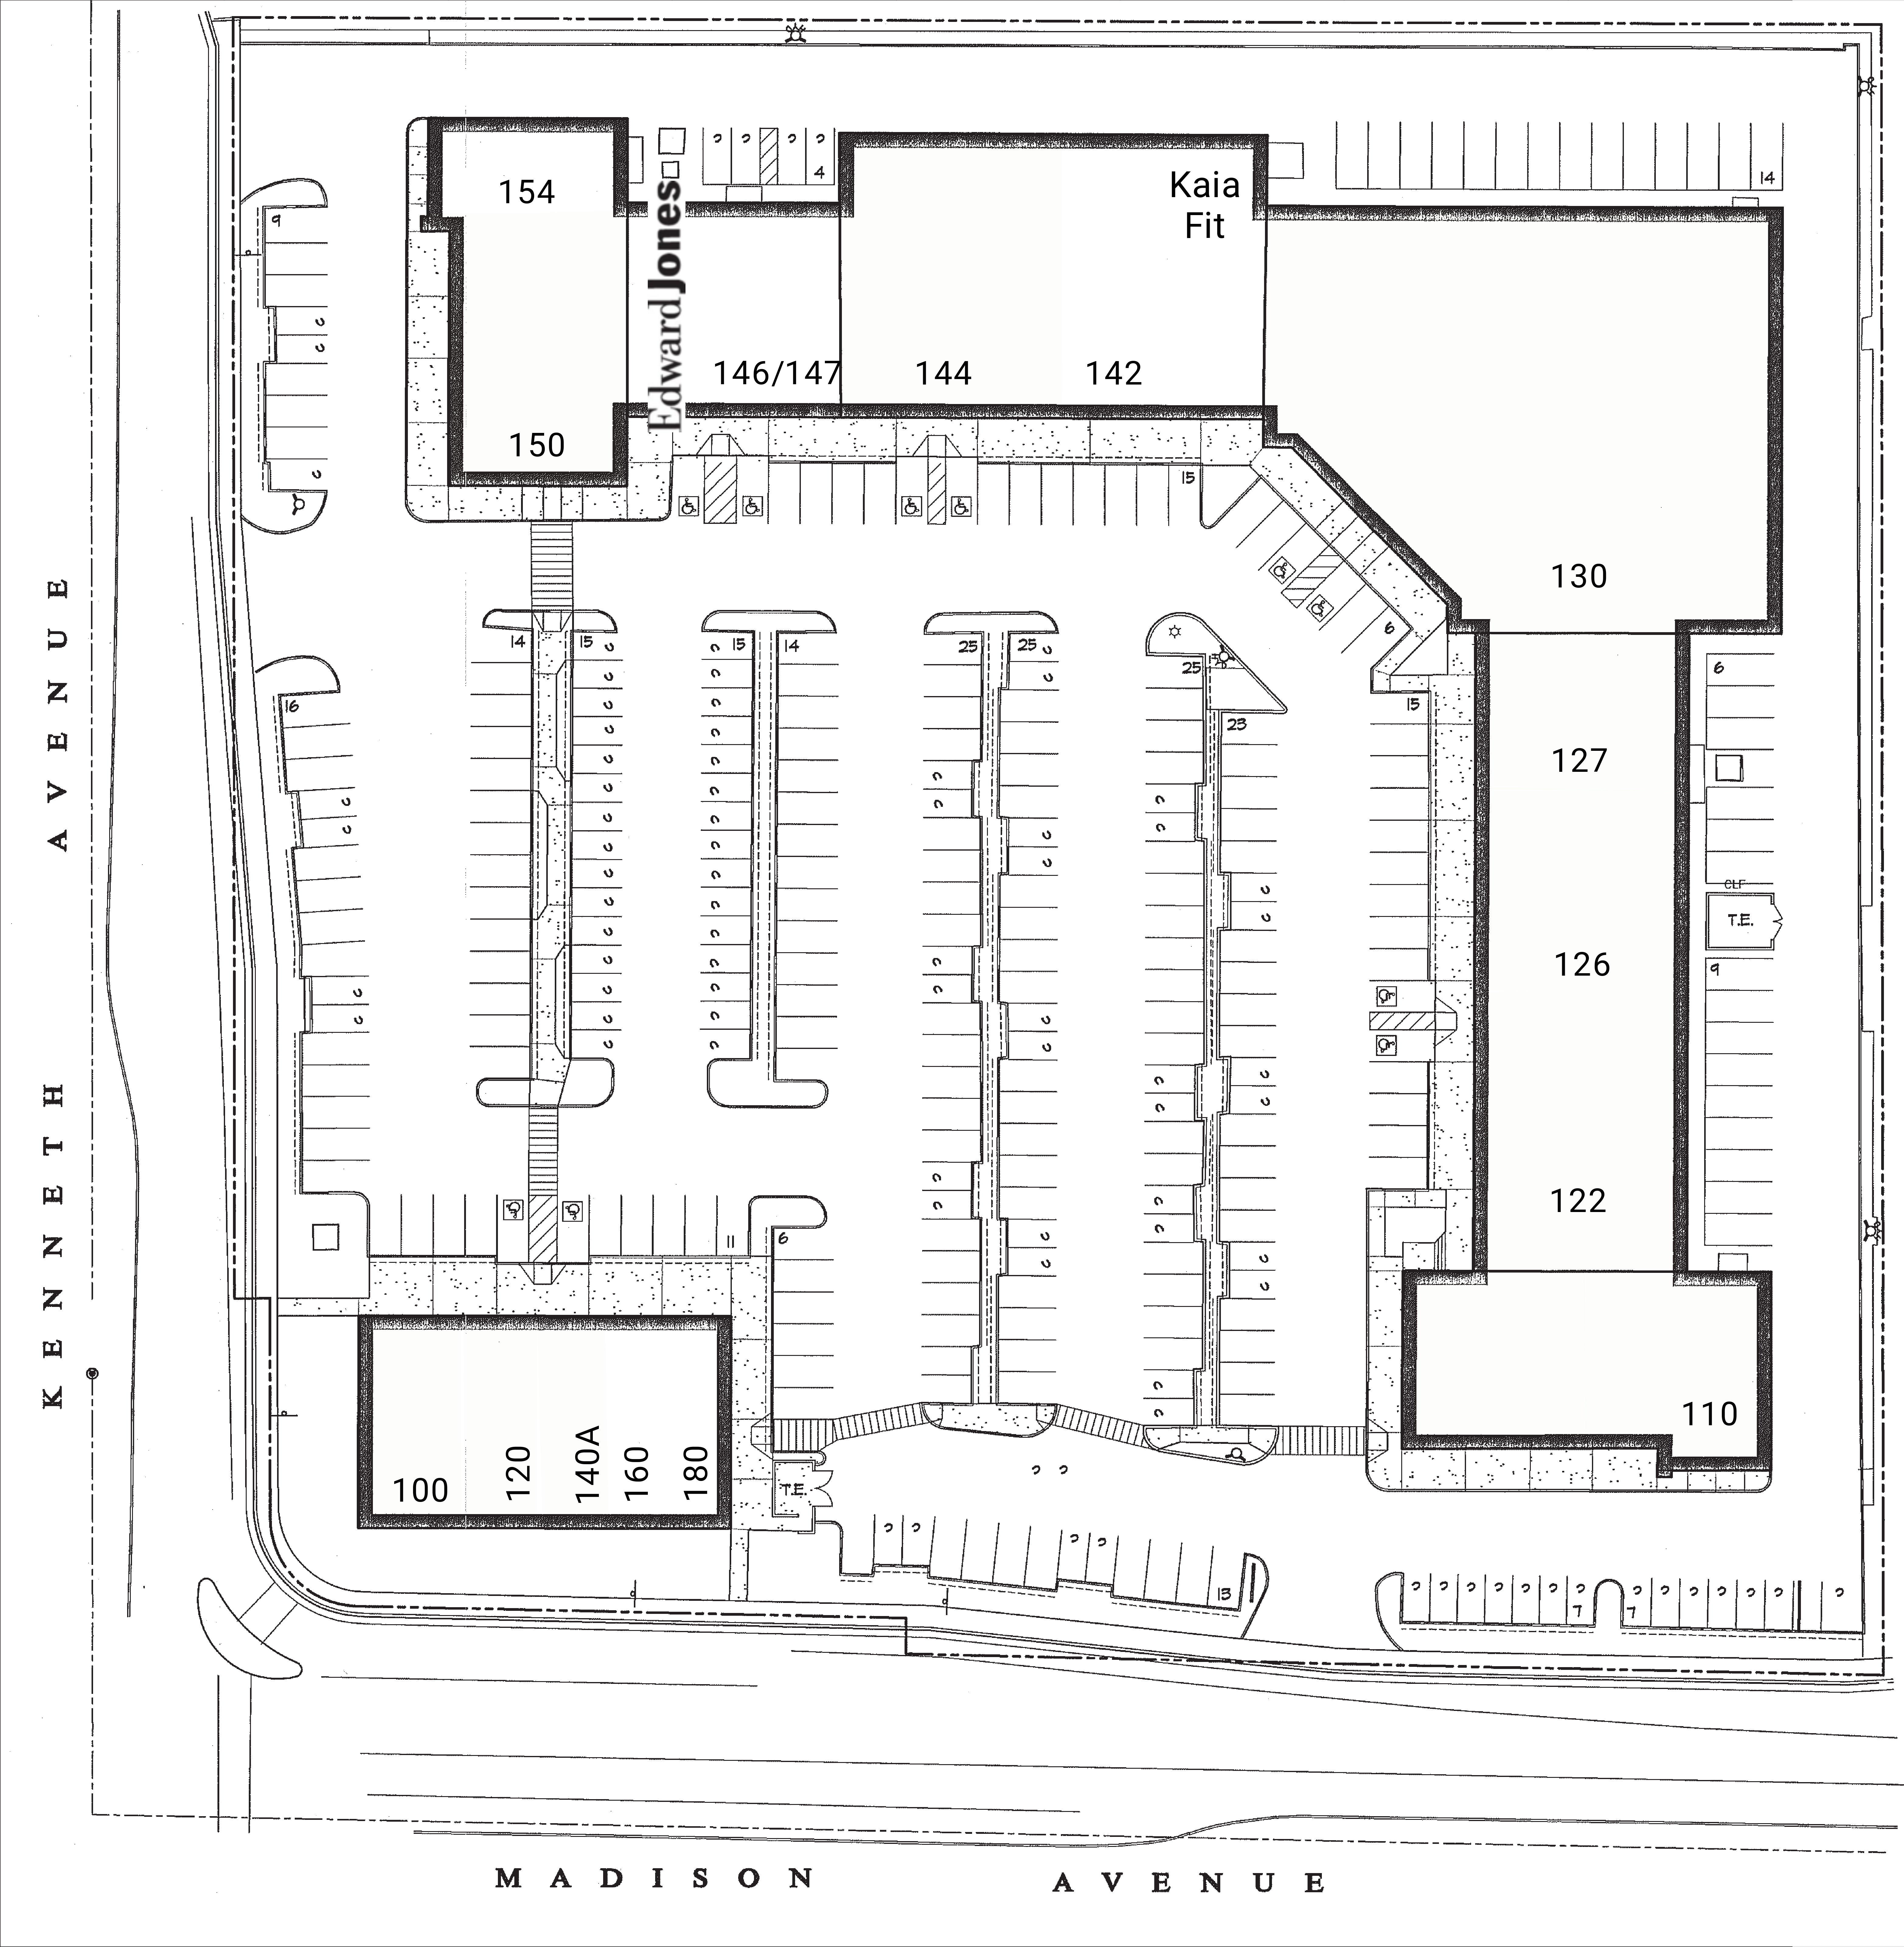 Fair Oaks Pointe: site plan